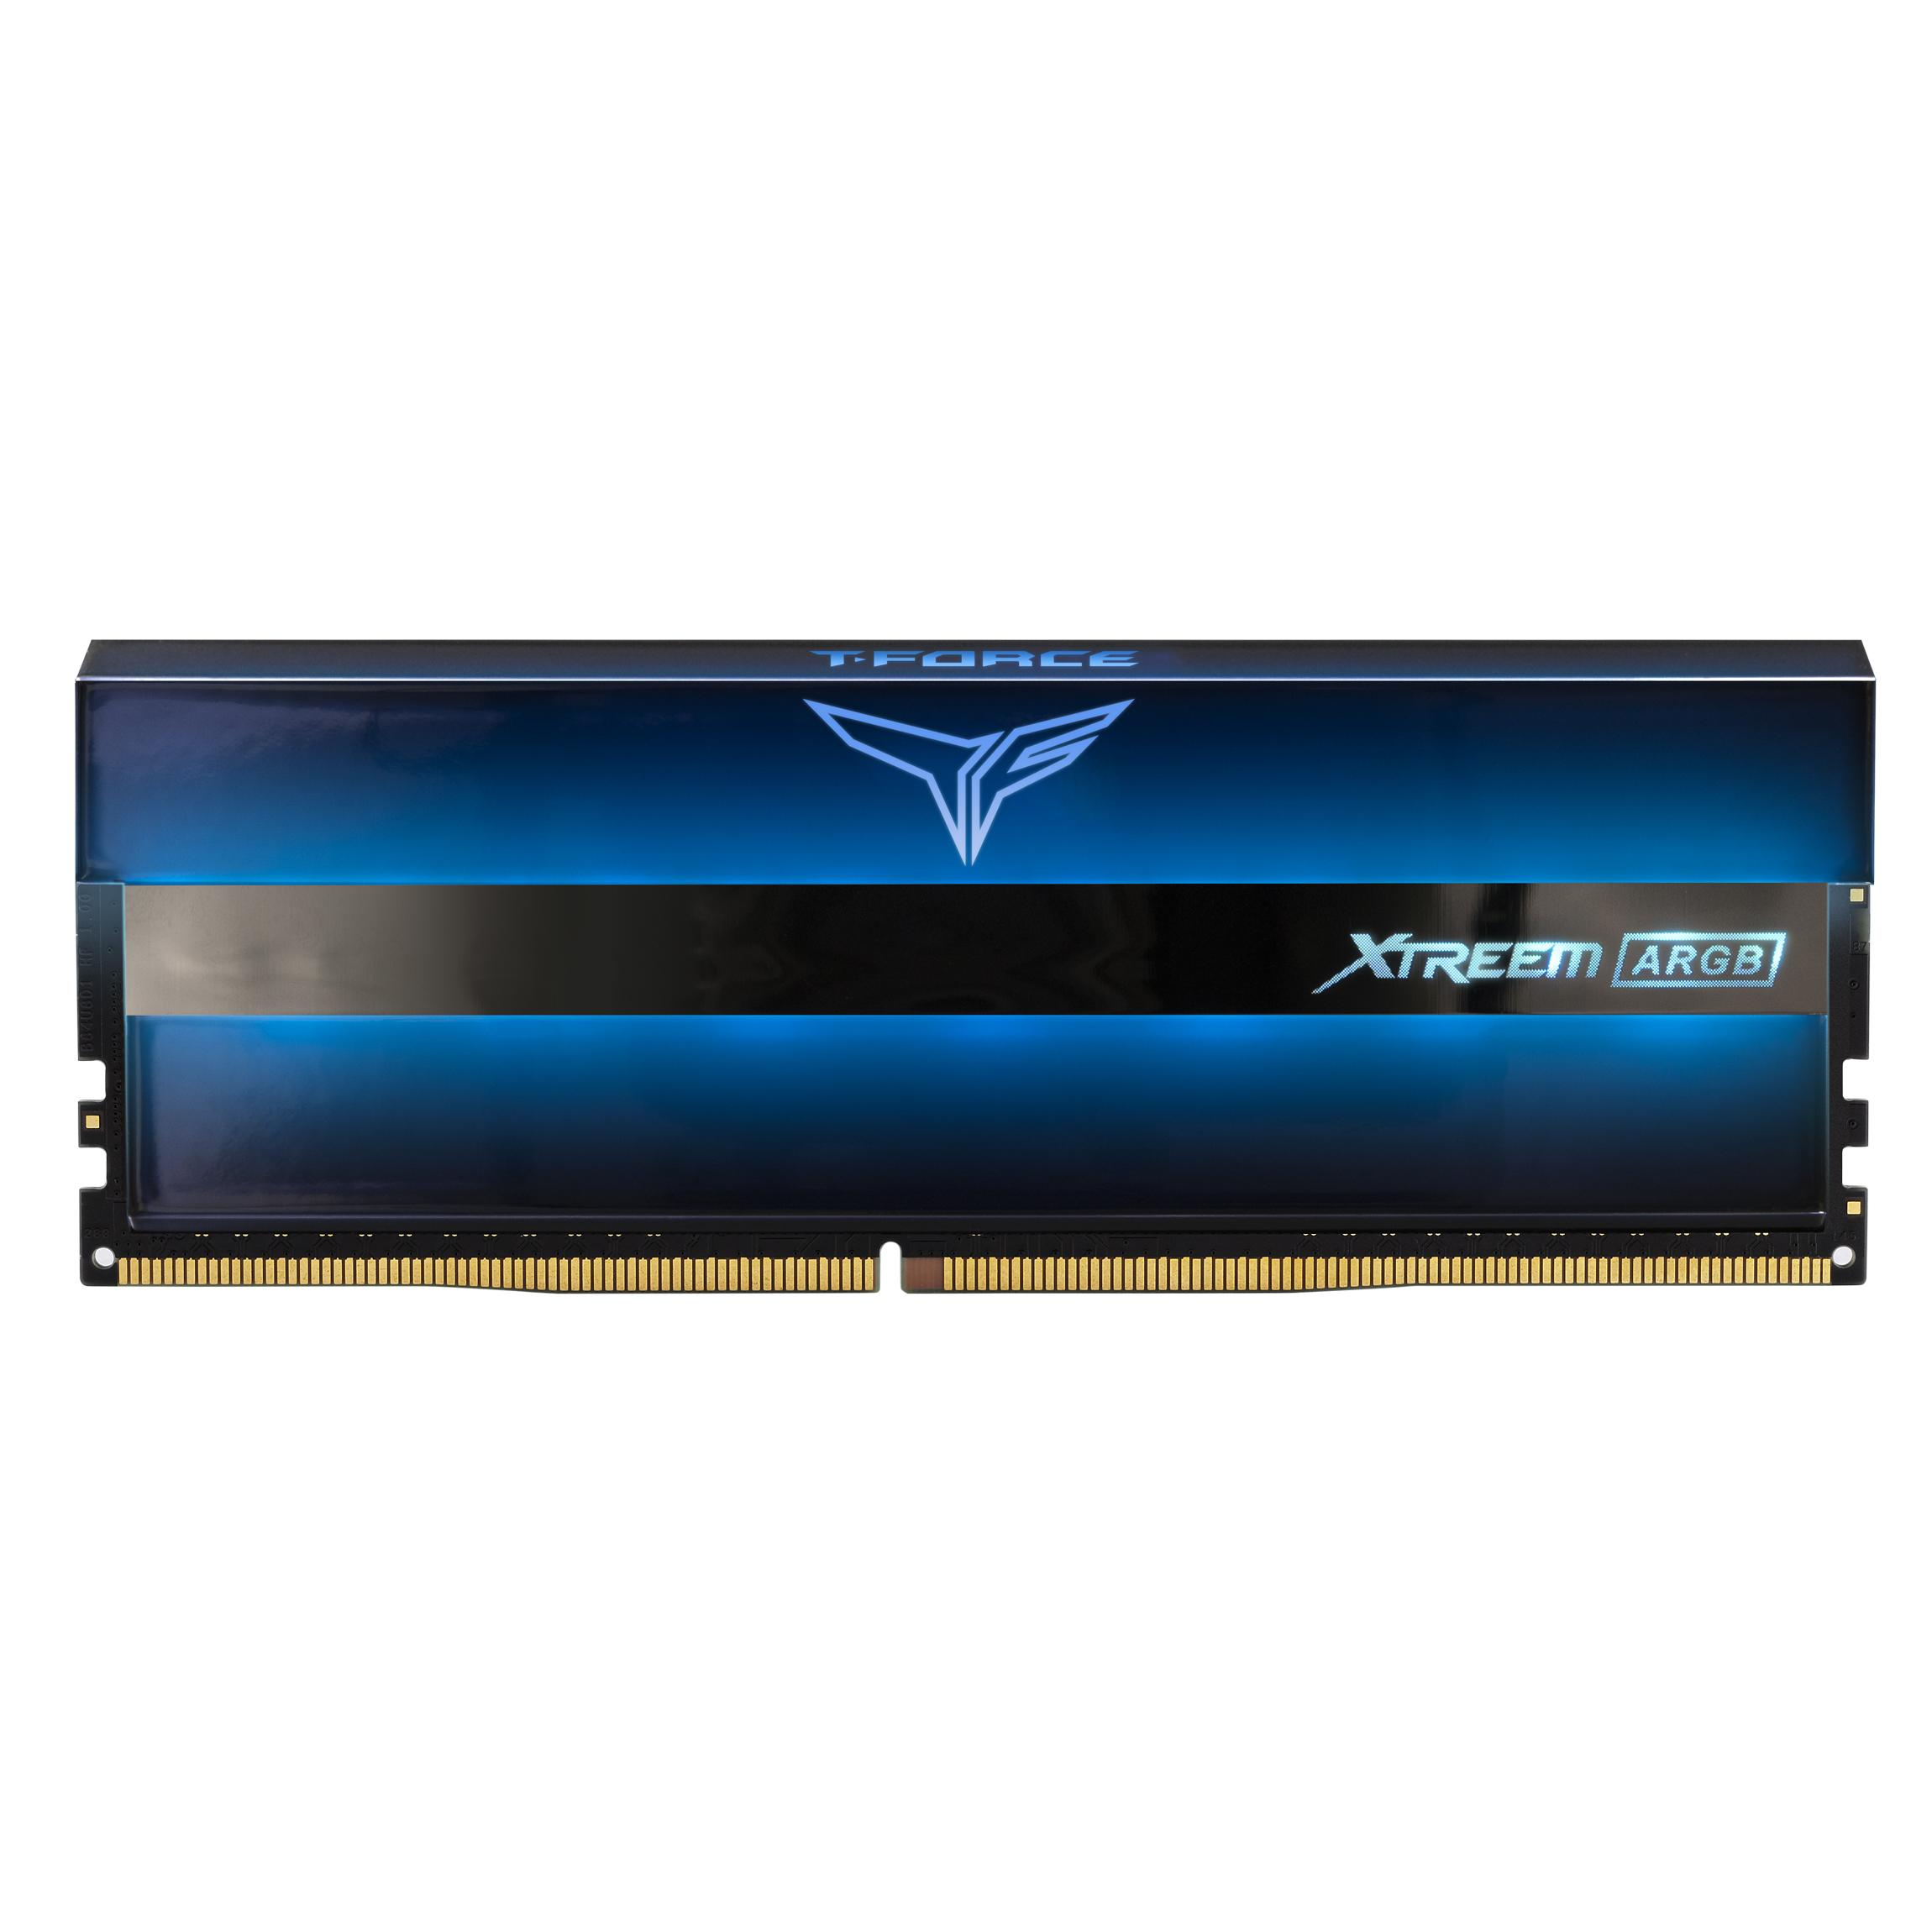 Памет Team Group T-Force XTREEM ARGB, DDR4, 16GB (2x8GB), 3200MHz, CL14-14-14-34, 1.35V-4